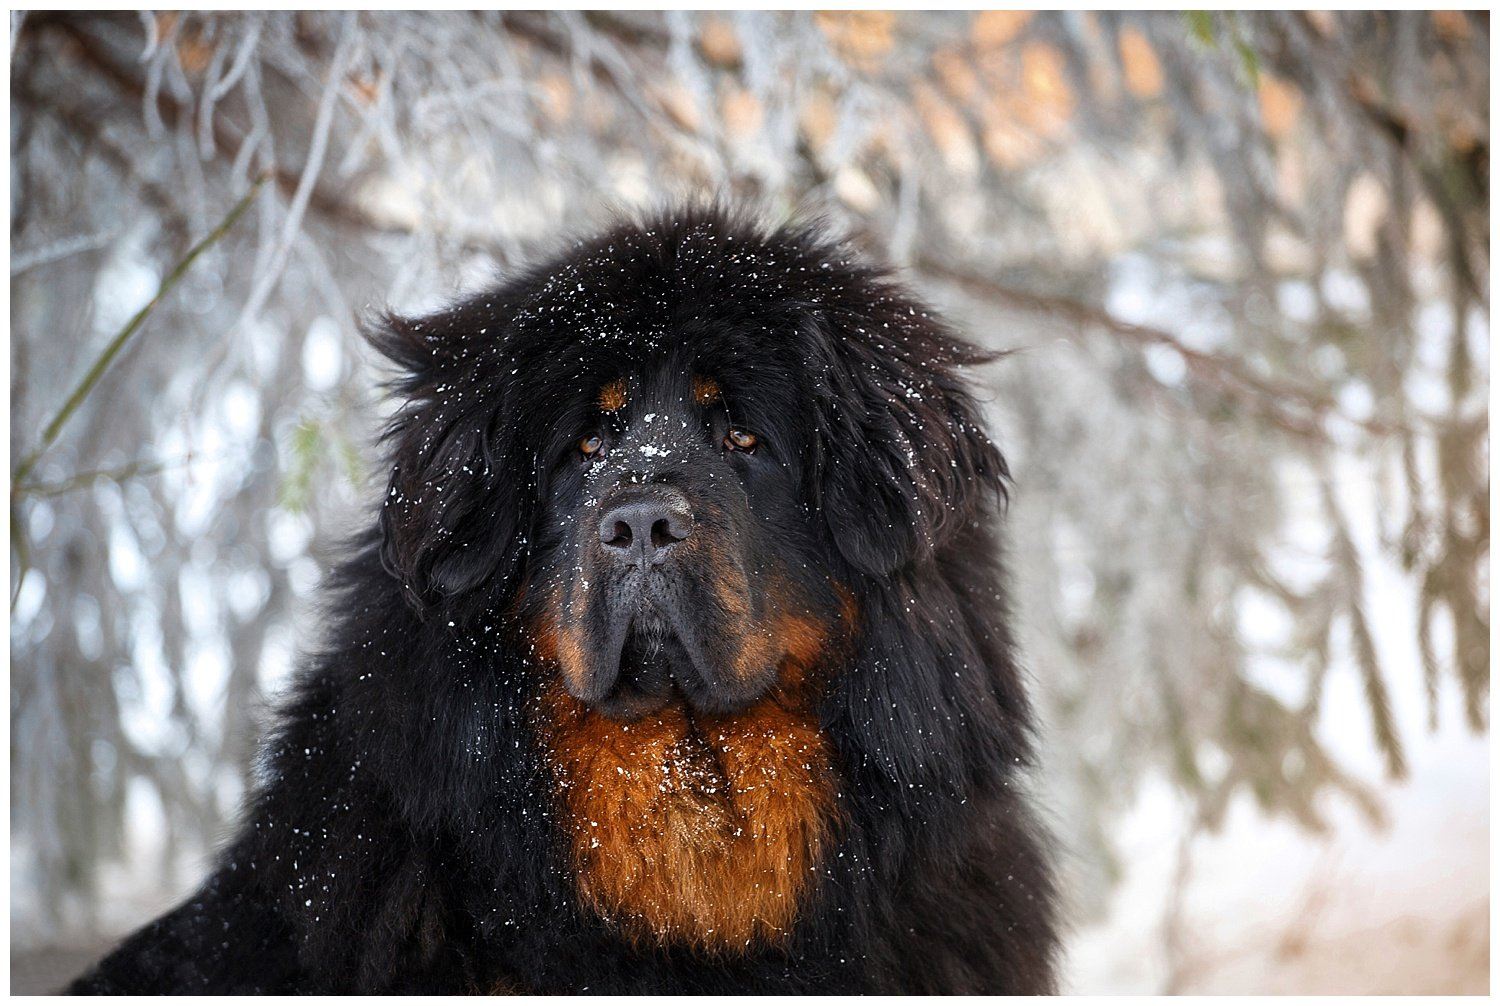 Tibetan Mastiff dog mistaken for bear